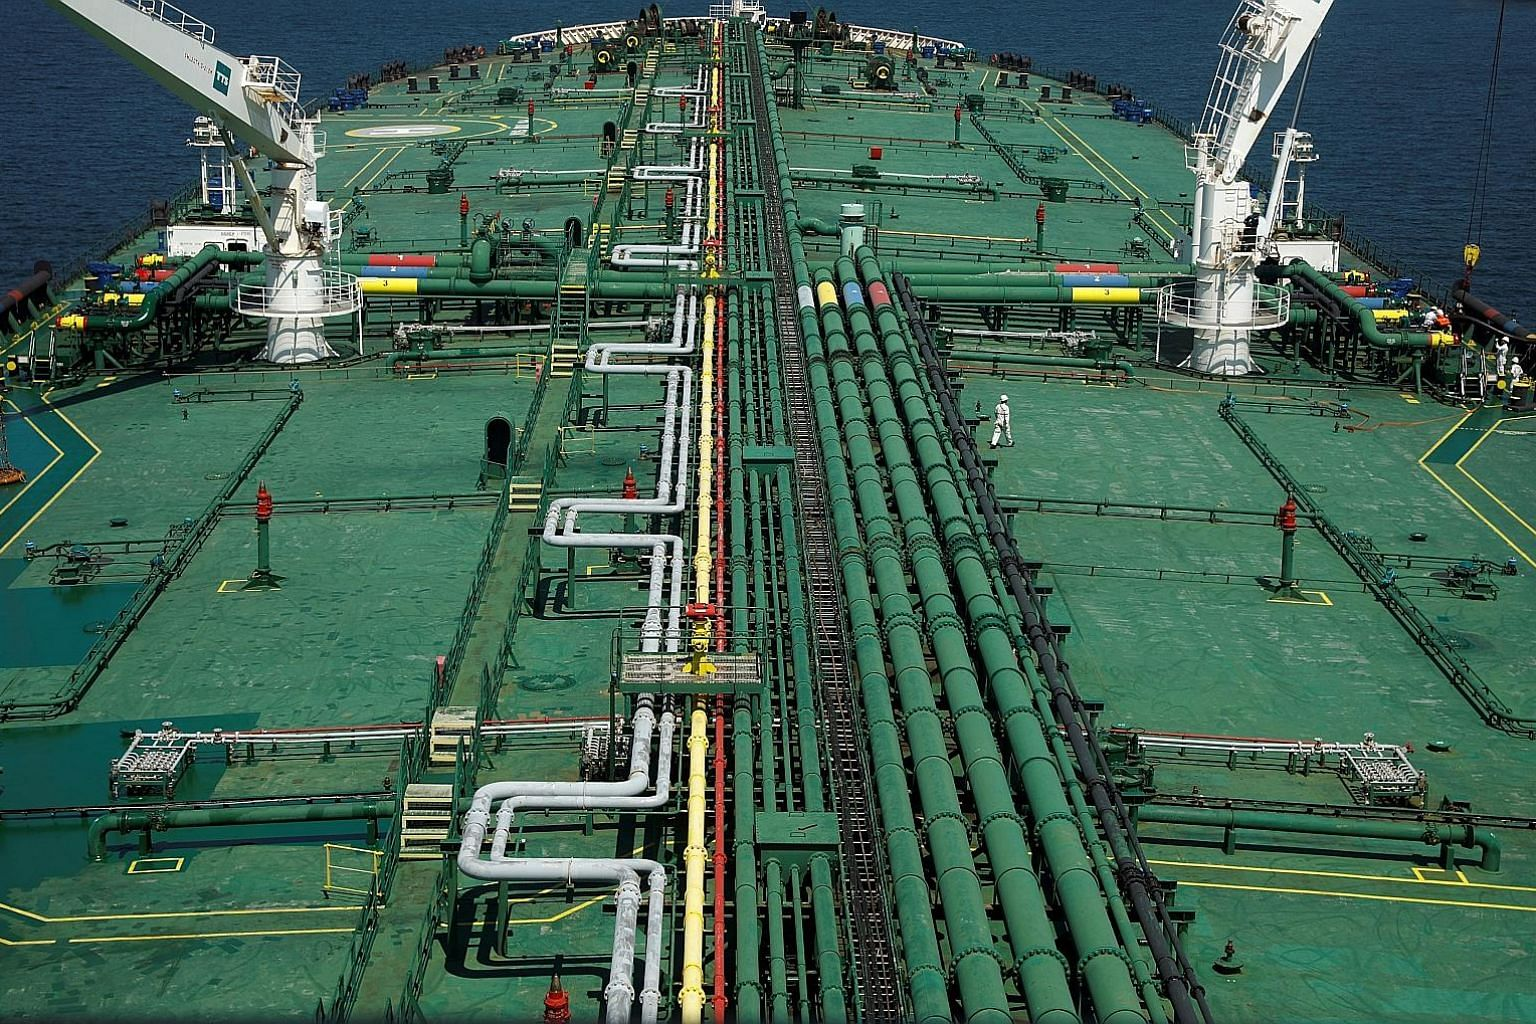 Pipelines running along the deck of Singapore oil trader Hin Leong's Pu Tuo San VLCC (very large crude carrier), when the supertanker was in the waters off Jurong Island last year. The company, founded in 1963, owes some US$3.85 billion (S$5.5 billio